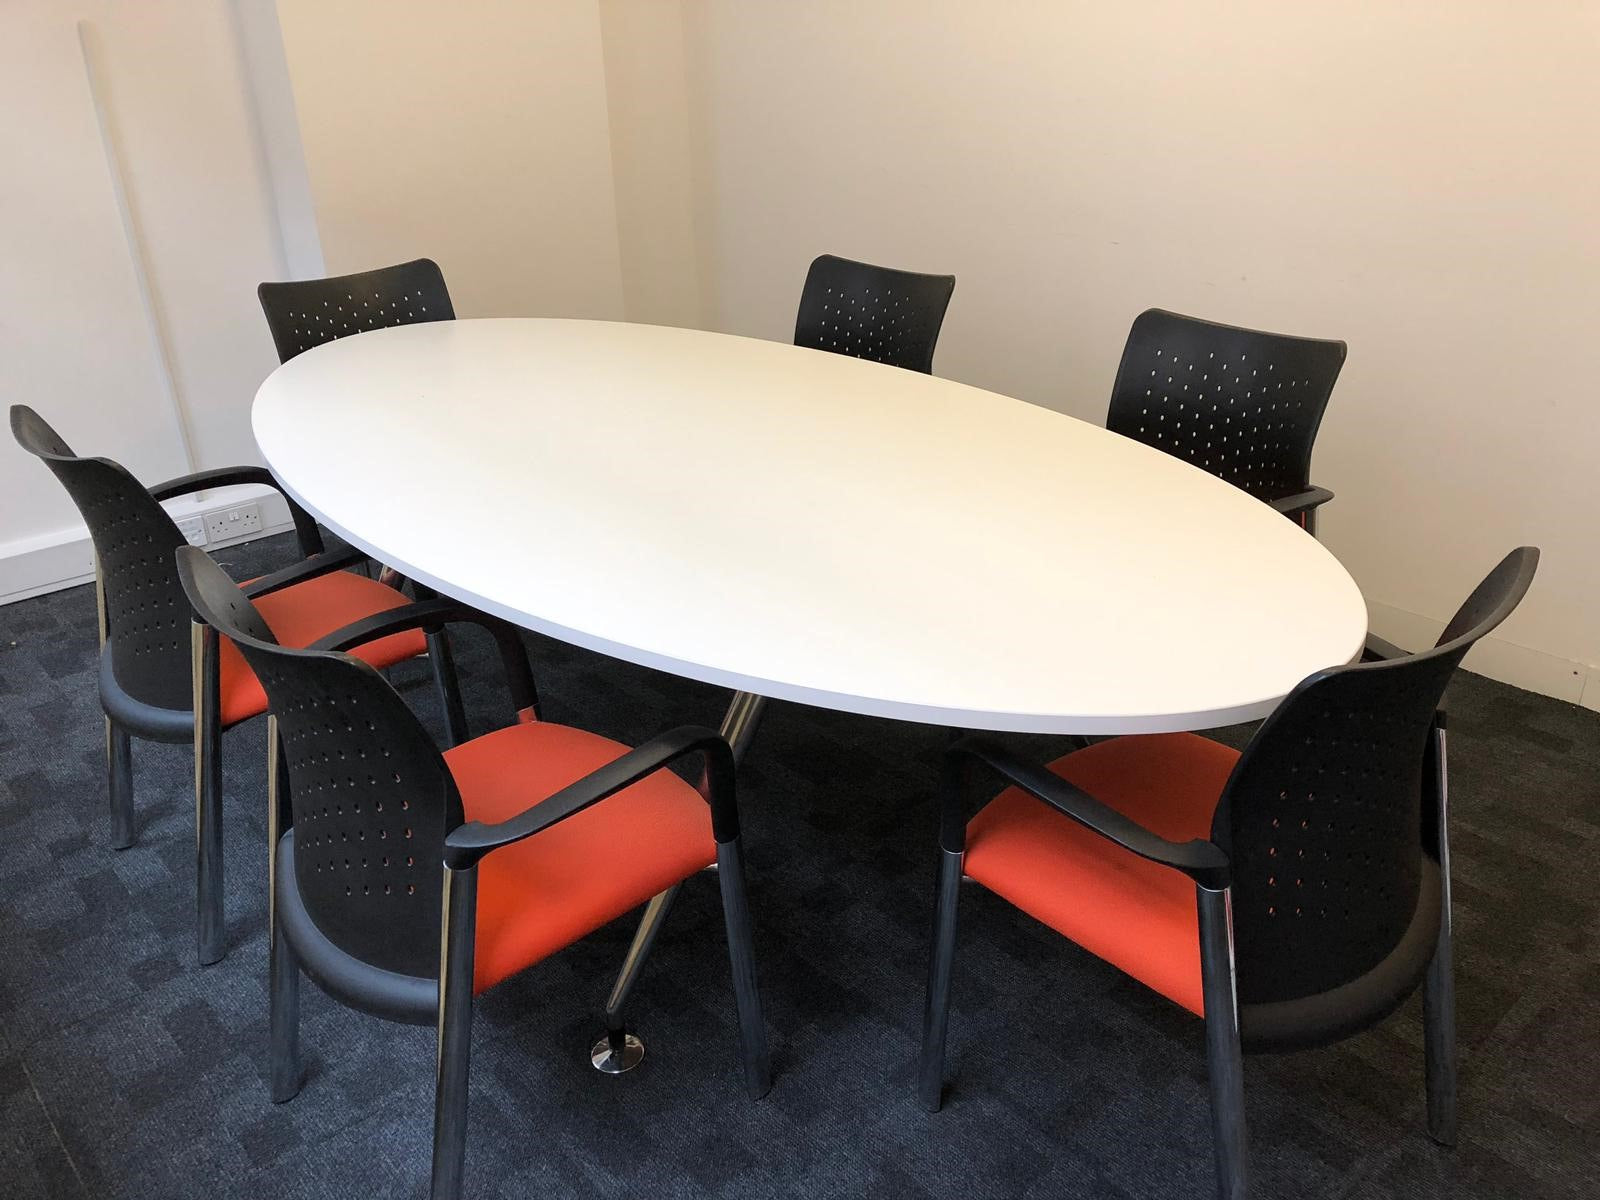 Picture of: 6 8 Person White Oval Meeting Table With Chairs Flogit2us Com